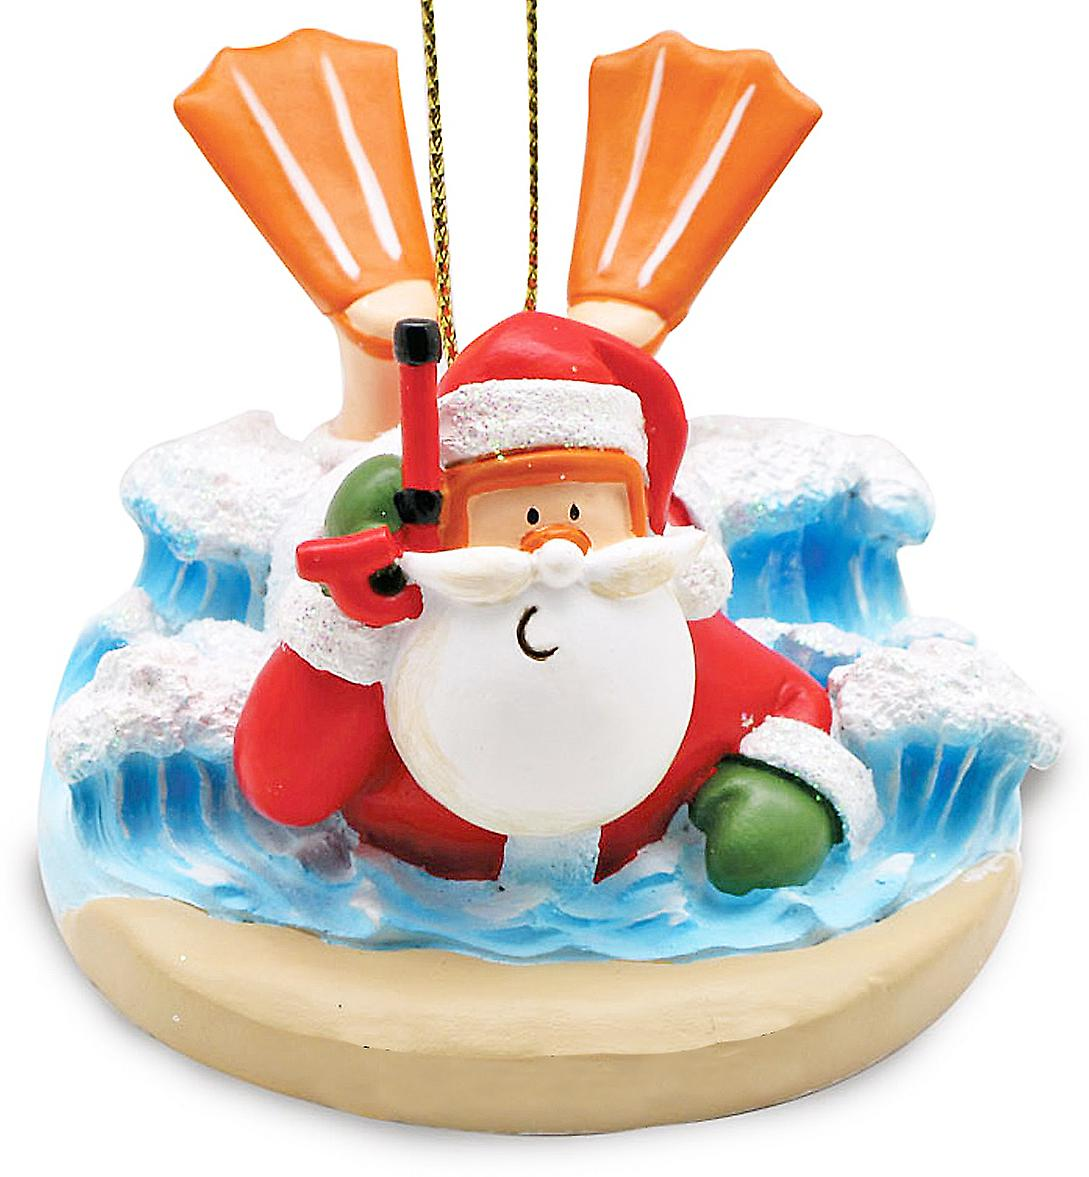 Cape Shore Santa Body Surfing Tropical Christmas Holiday Ornament Resin